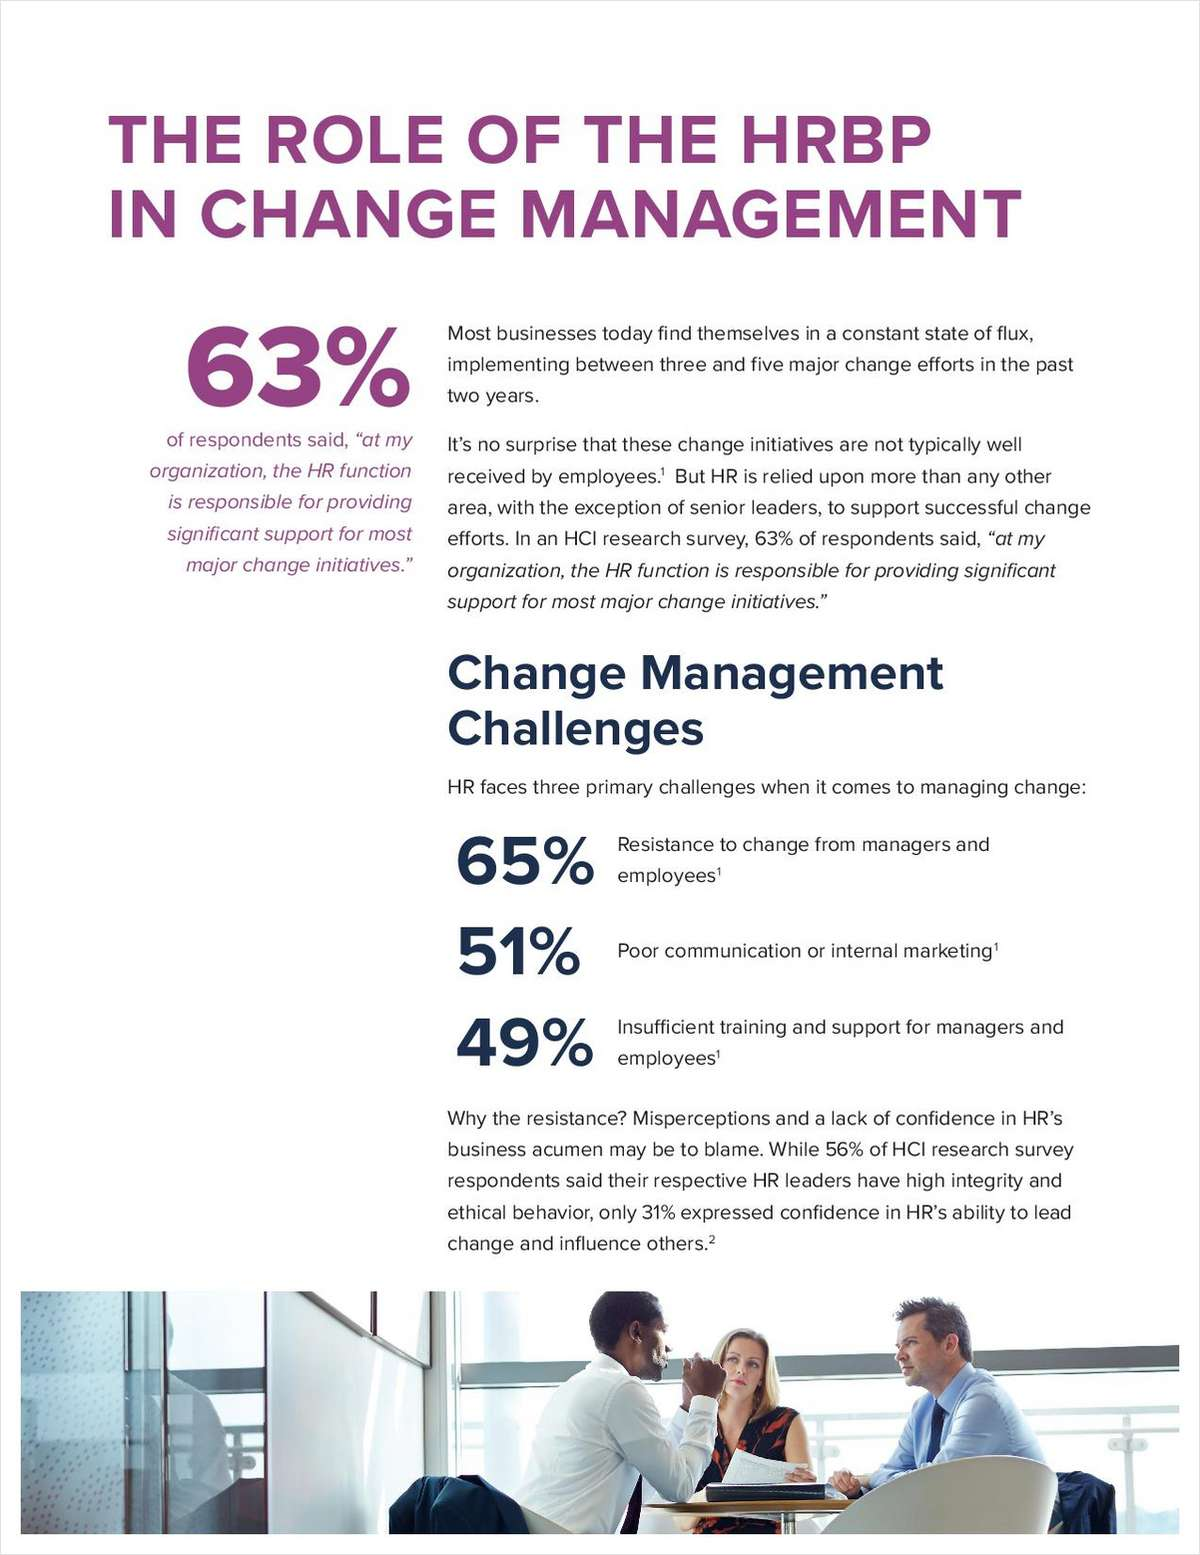 The Role of the HRBP in Change Management